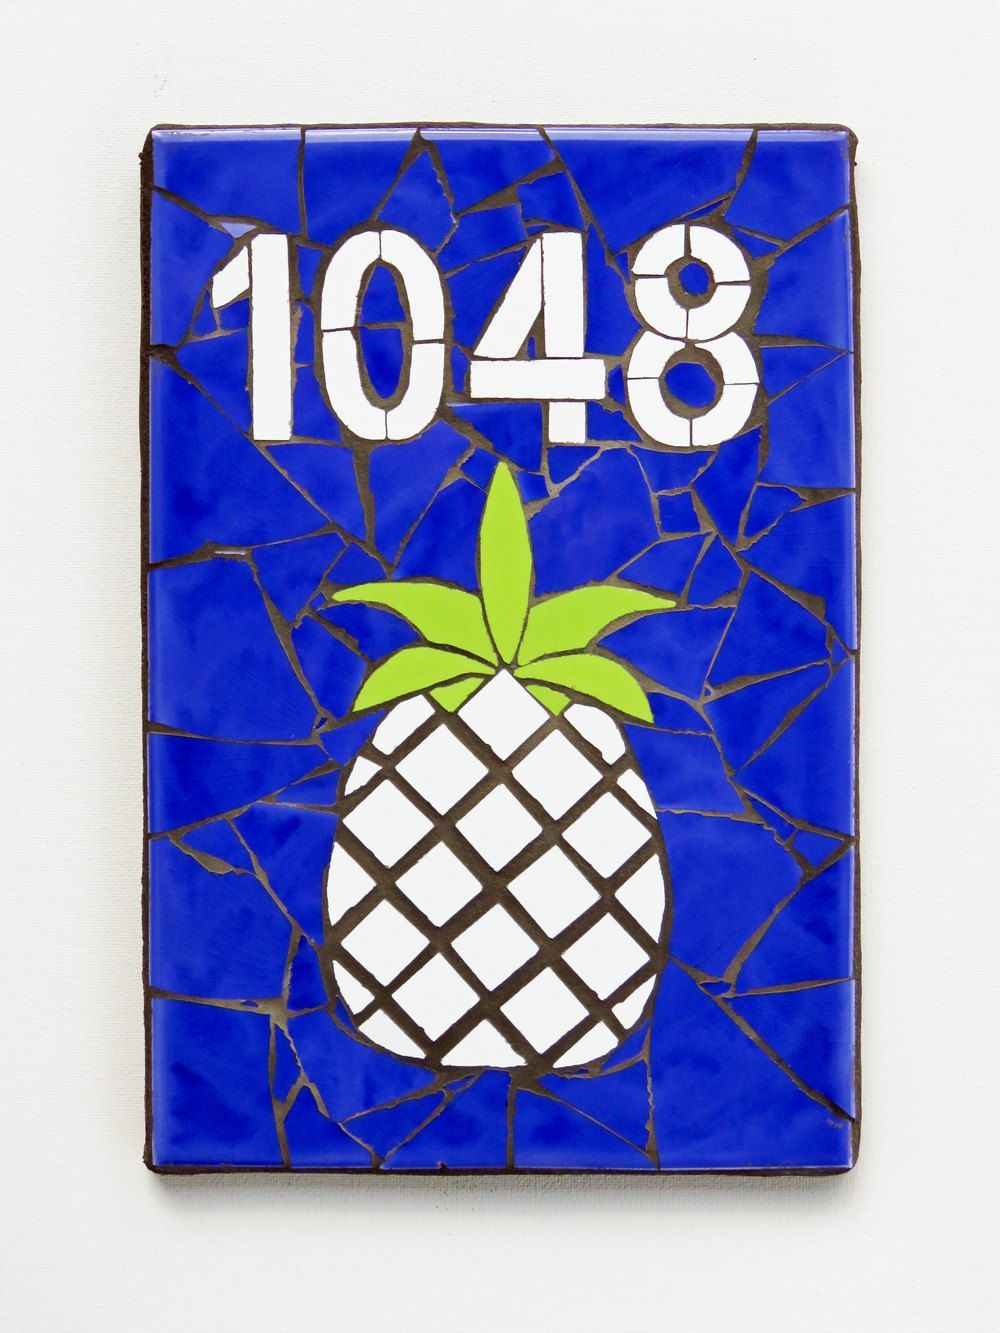 Mosaic house number plaque outdoor address number vertical mailbox mosaic house number plaque outdoor address number vertical mailbox number mosaic tile custom sign modern beach housewarming gift pineapple dailygadgetfo Gallery